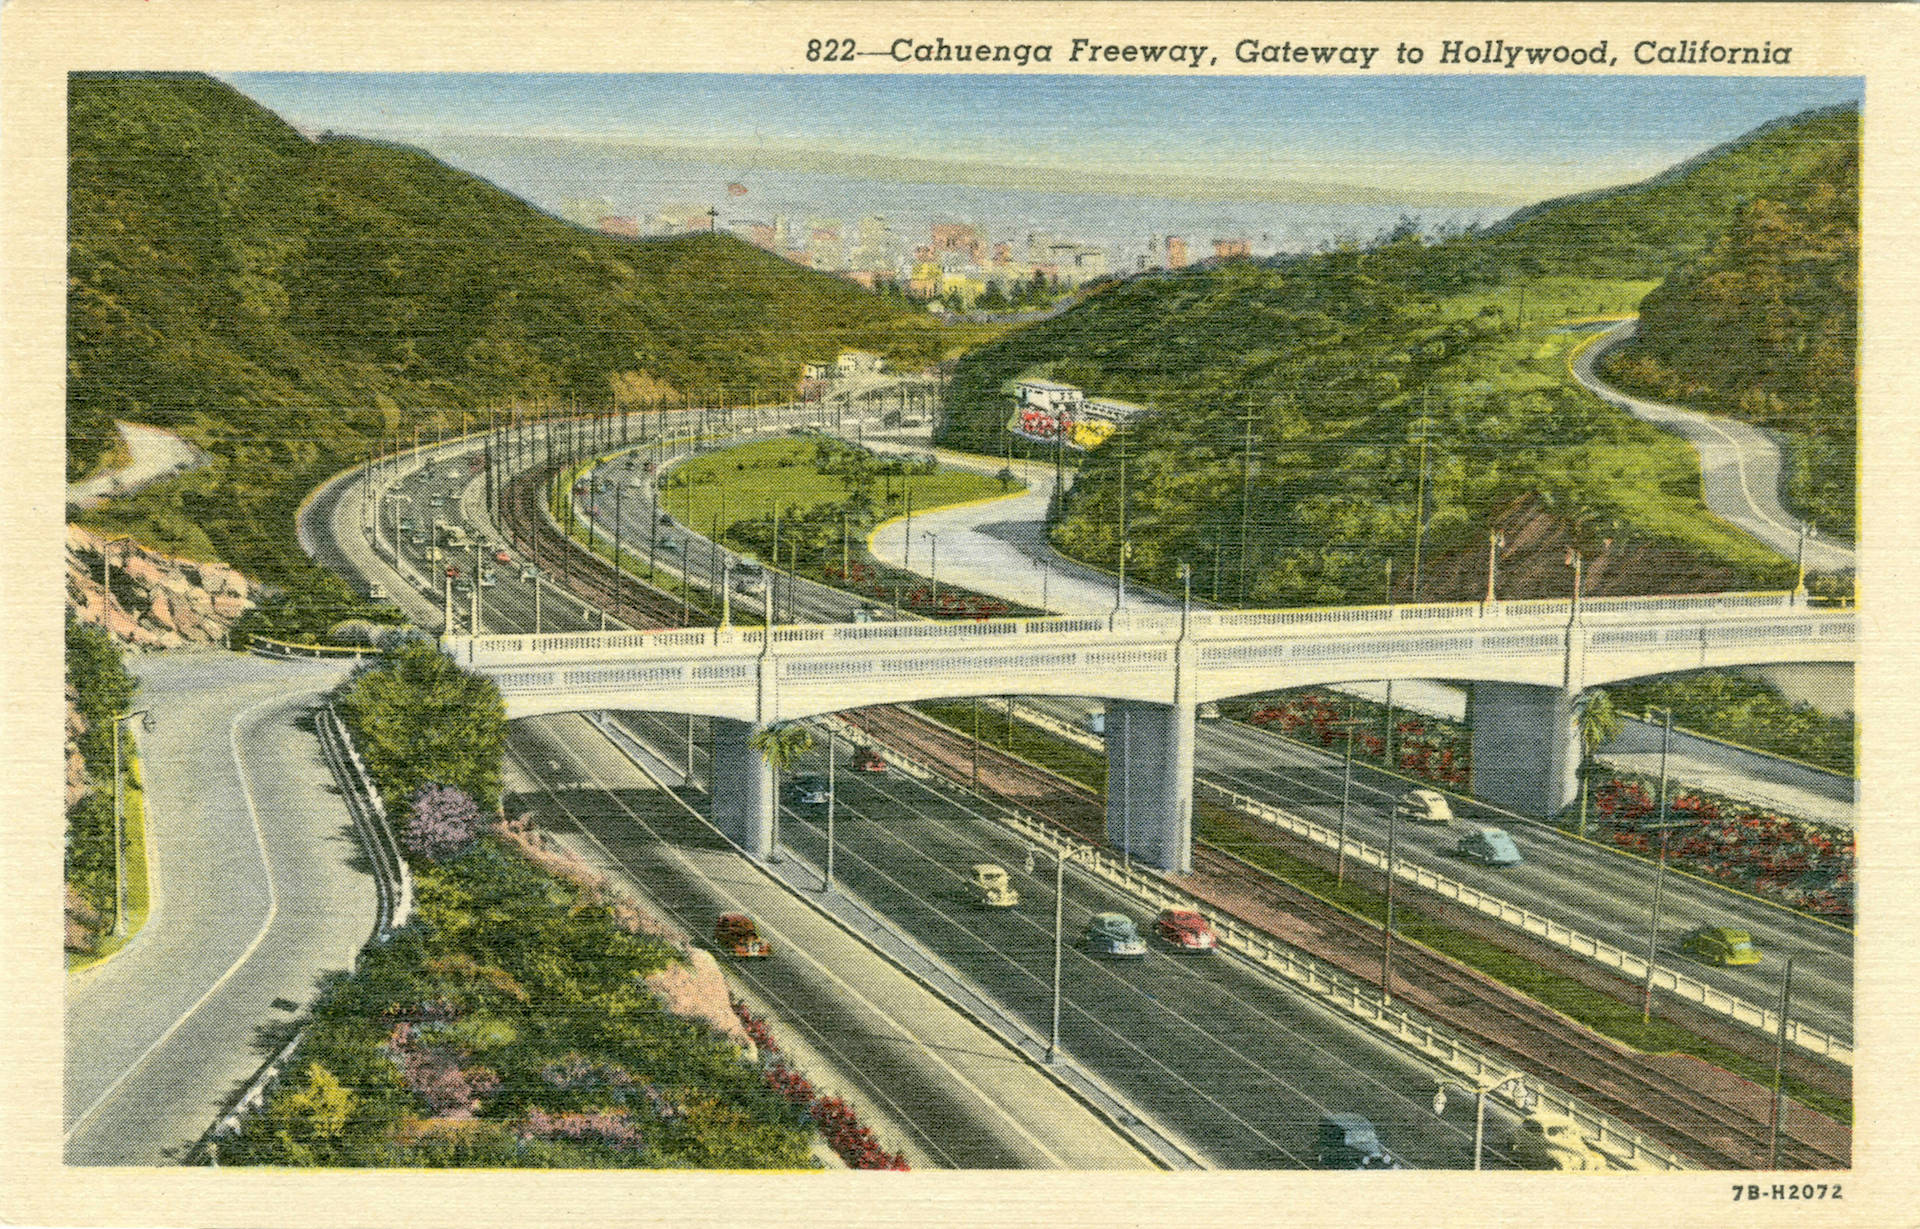 Cahuenga Freeway, Gateway to Hollywood, California